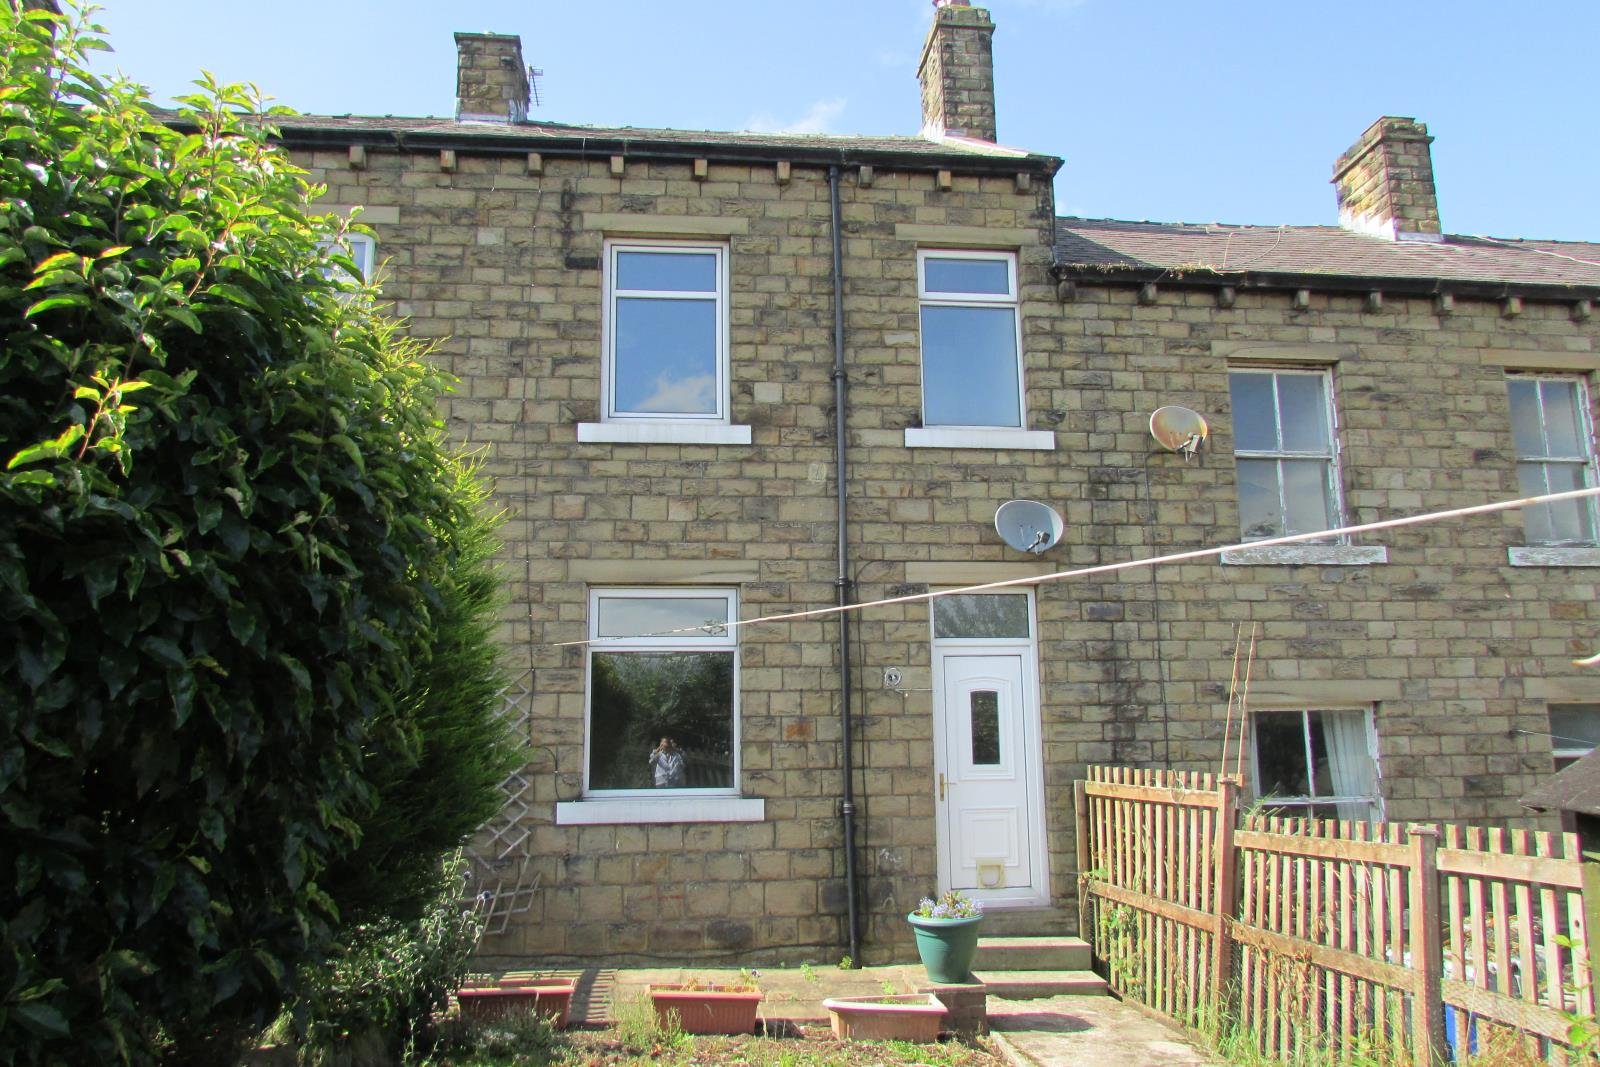 18 Croft Head, Skelmanthorpe, Huddersfield, HD8 9EB